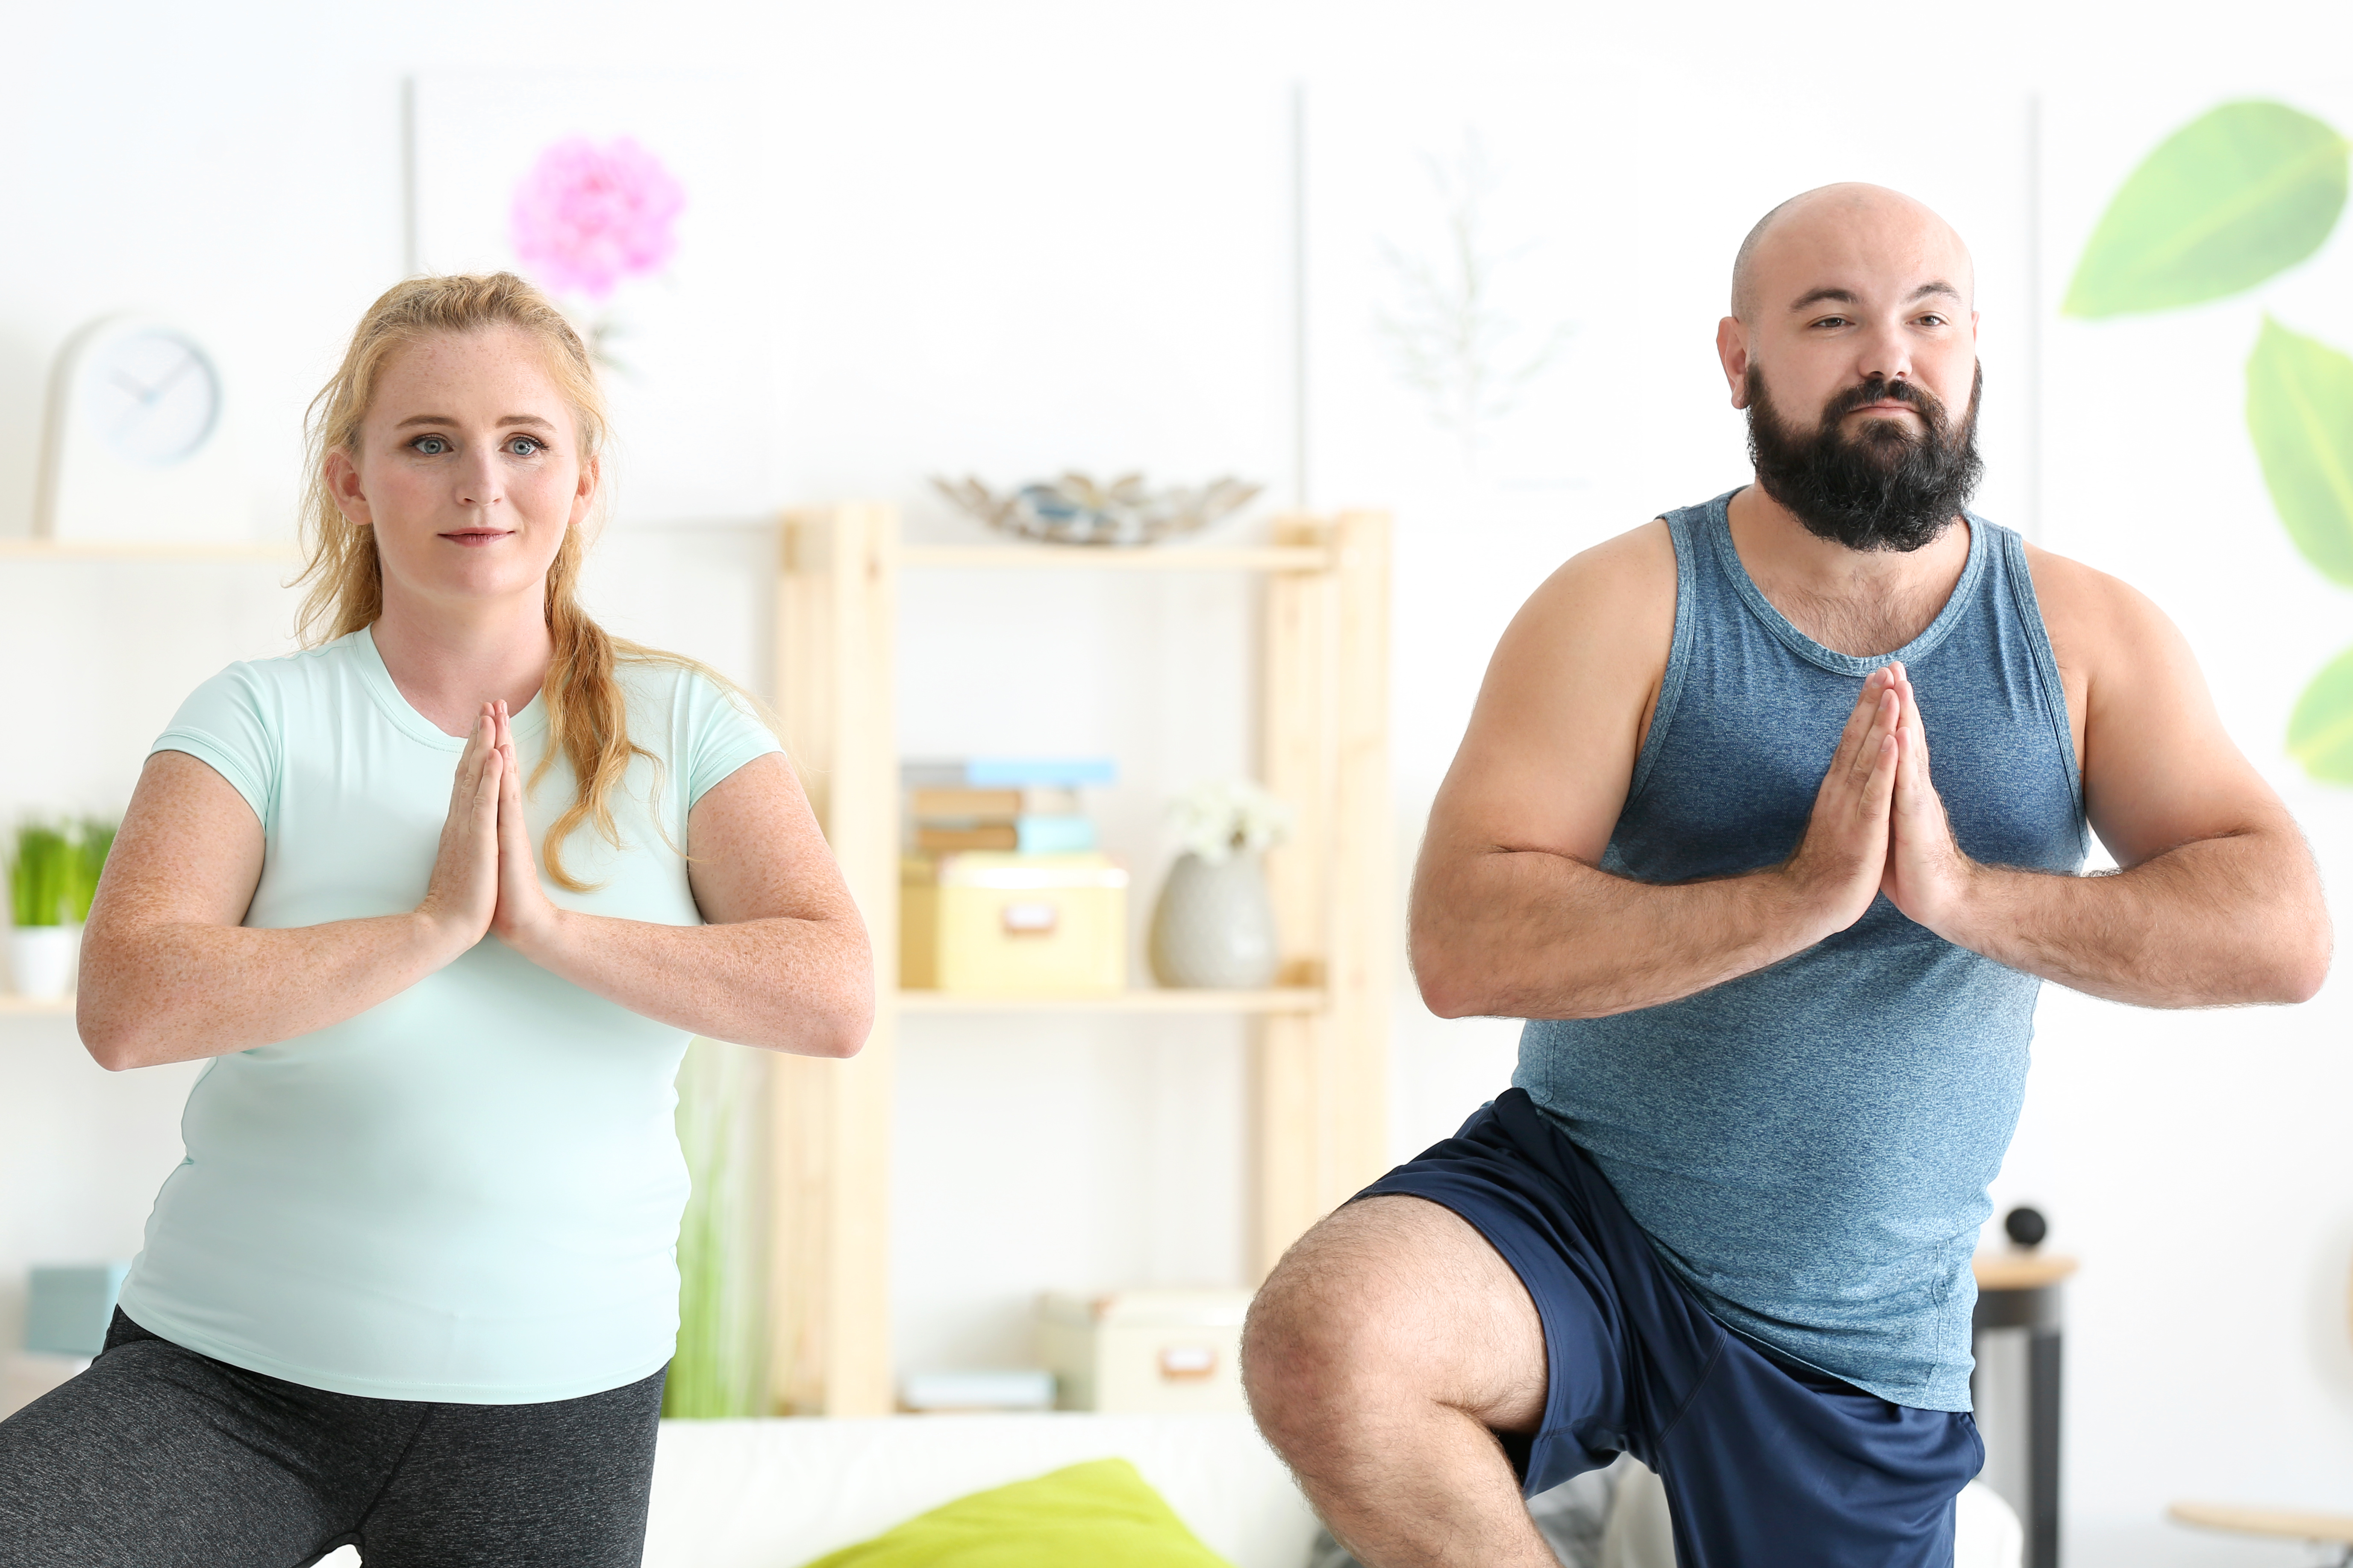 weight and yoga, diverse yoga classes, yoga for larger bodies, equality in yoga